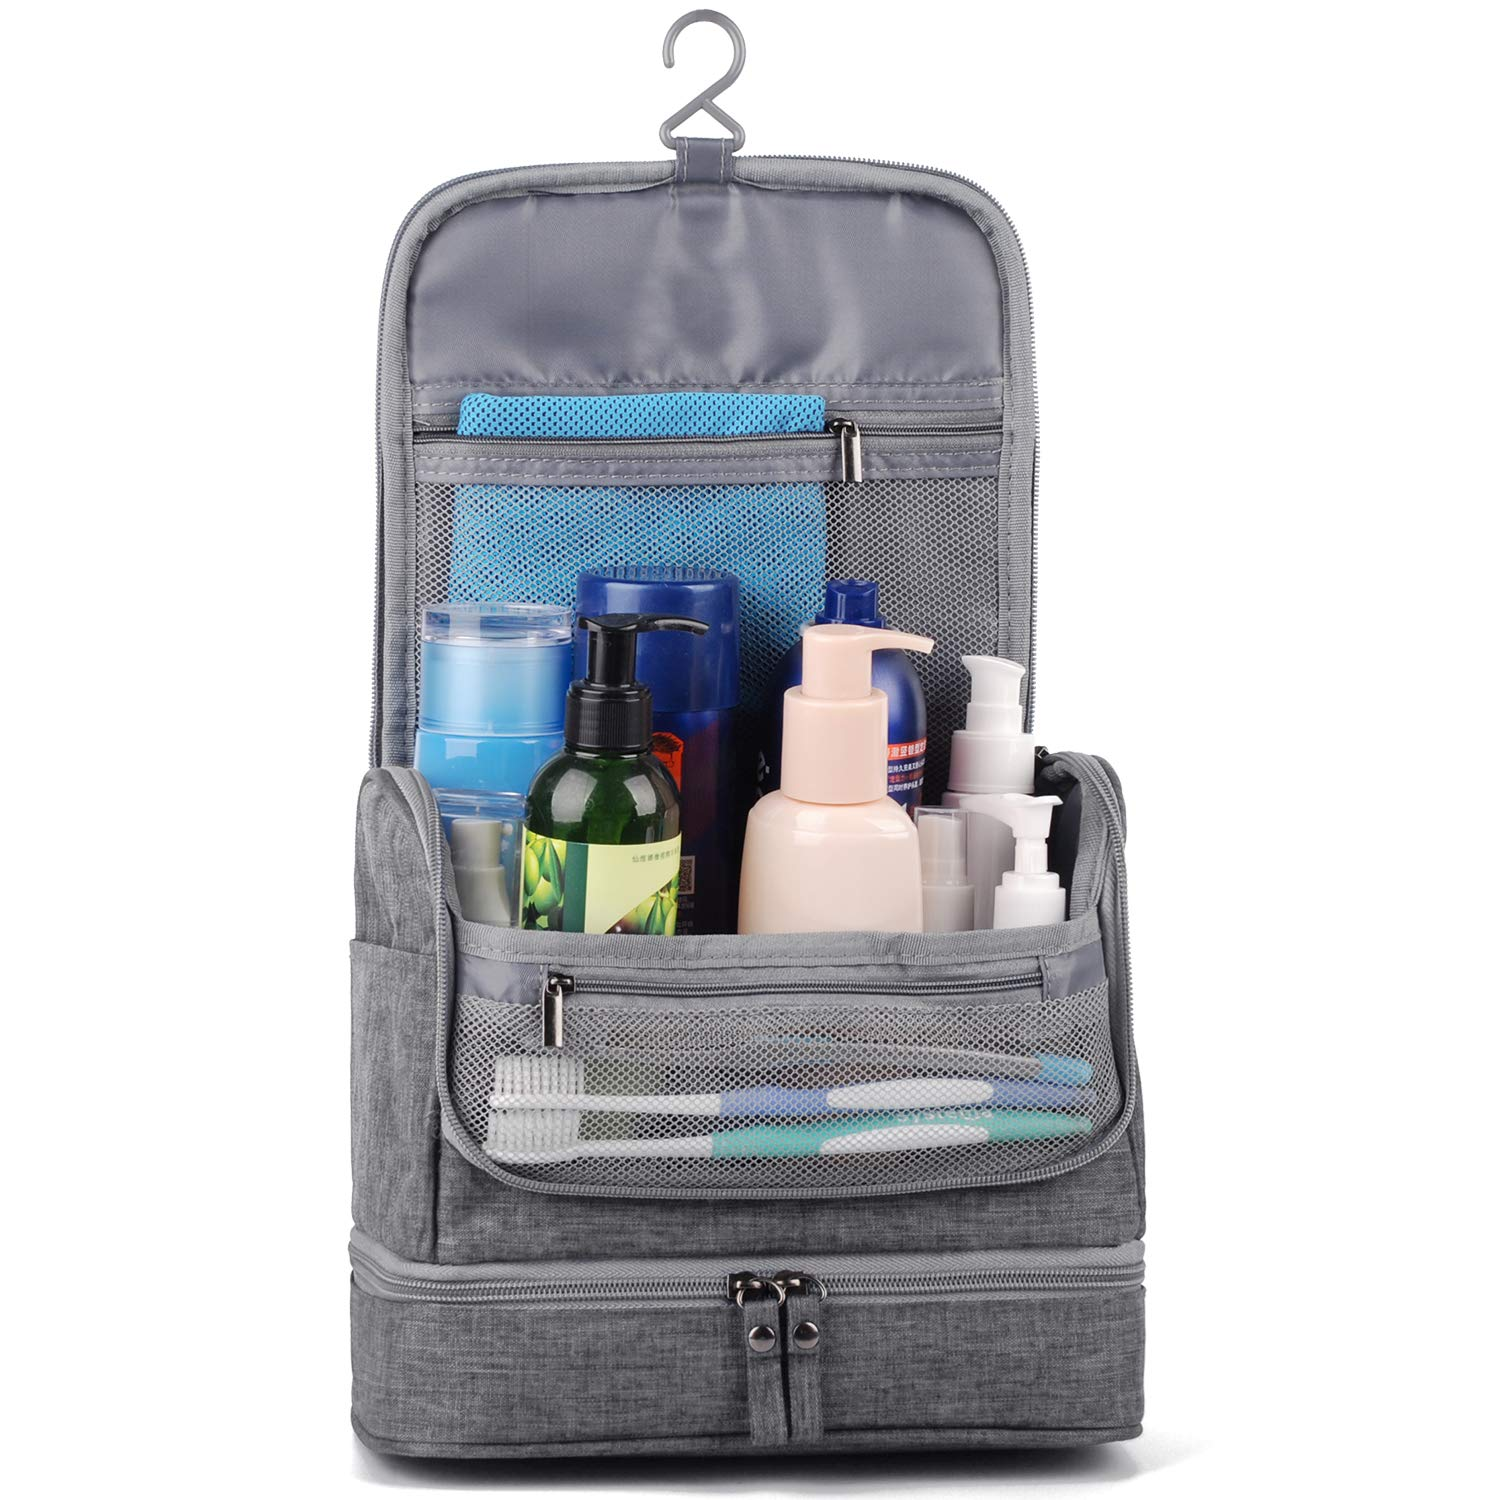 Narwey Travel Toiletry Bag Hanging Cosmetic Makeup Organizer Shaving Kit Waterproof for Men and Women by Narwey (Image #2)